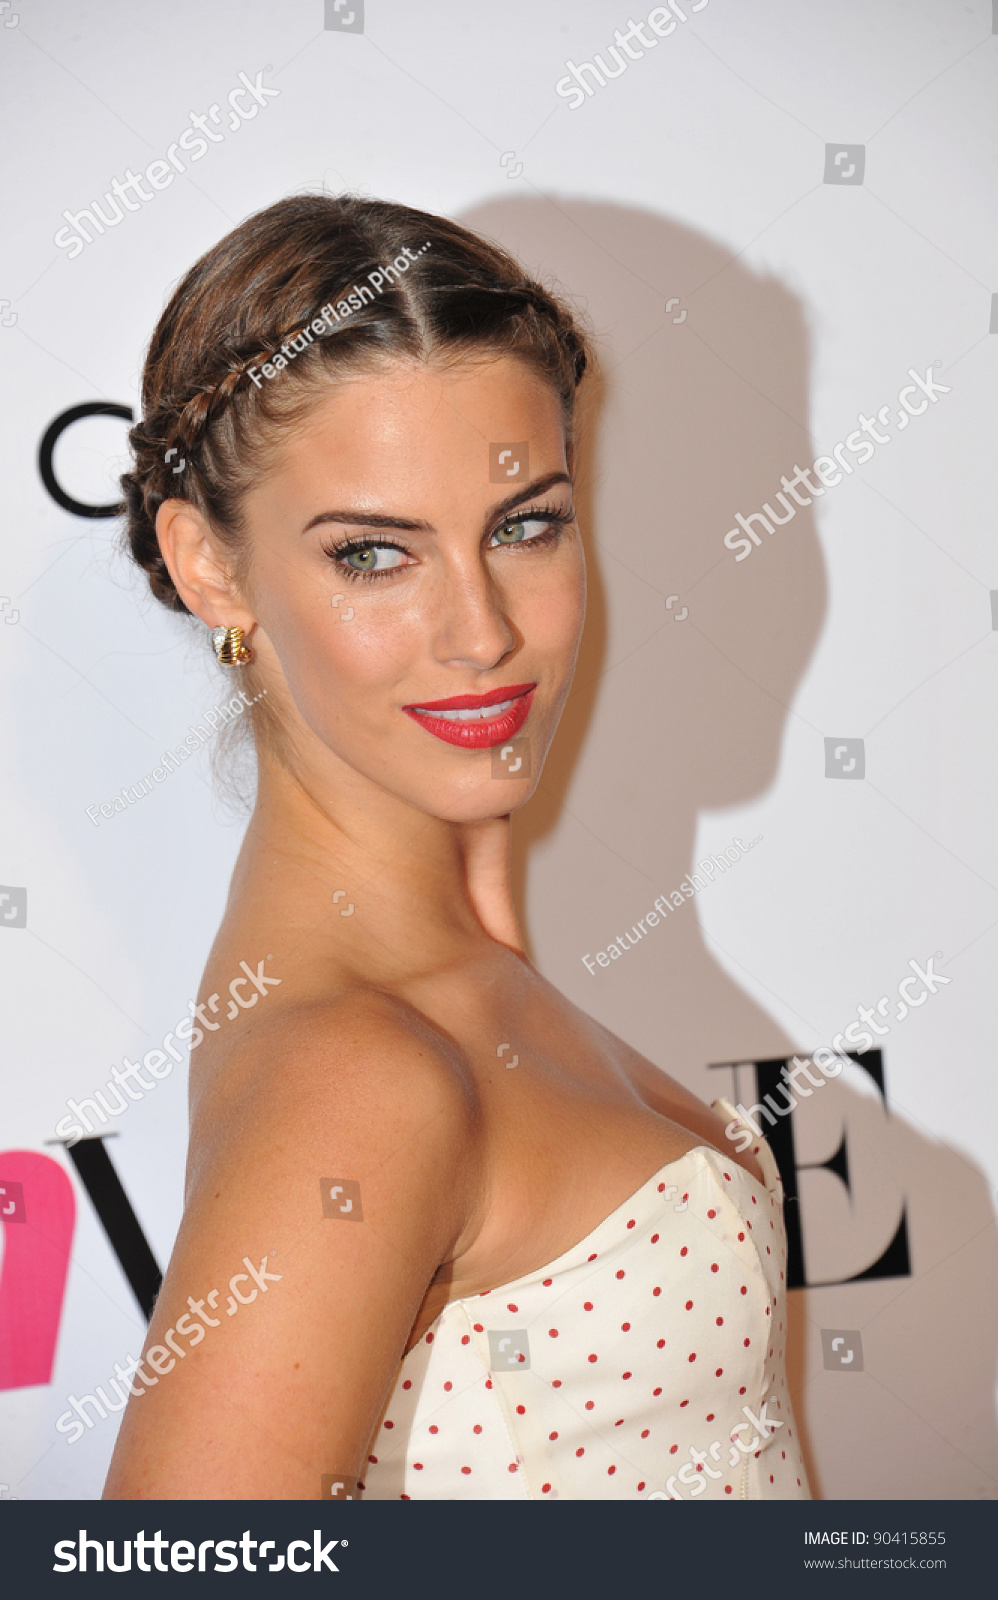 Have faced Jessica lowndes young reply, attribute